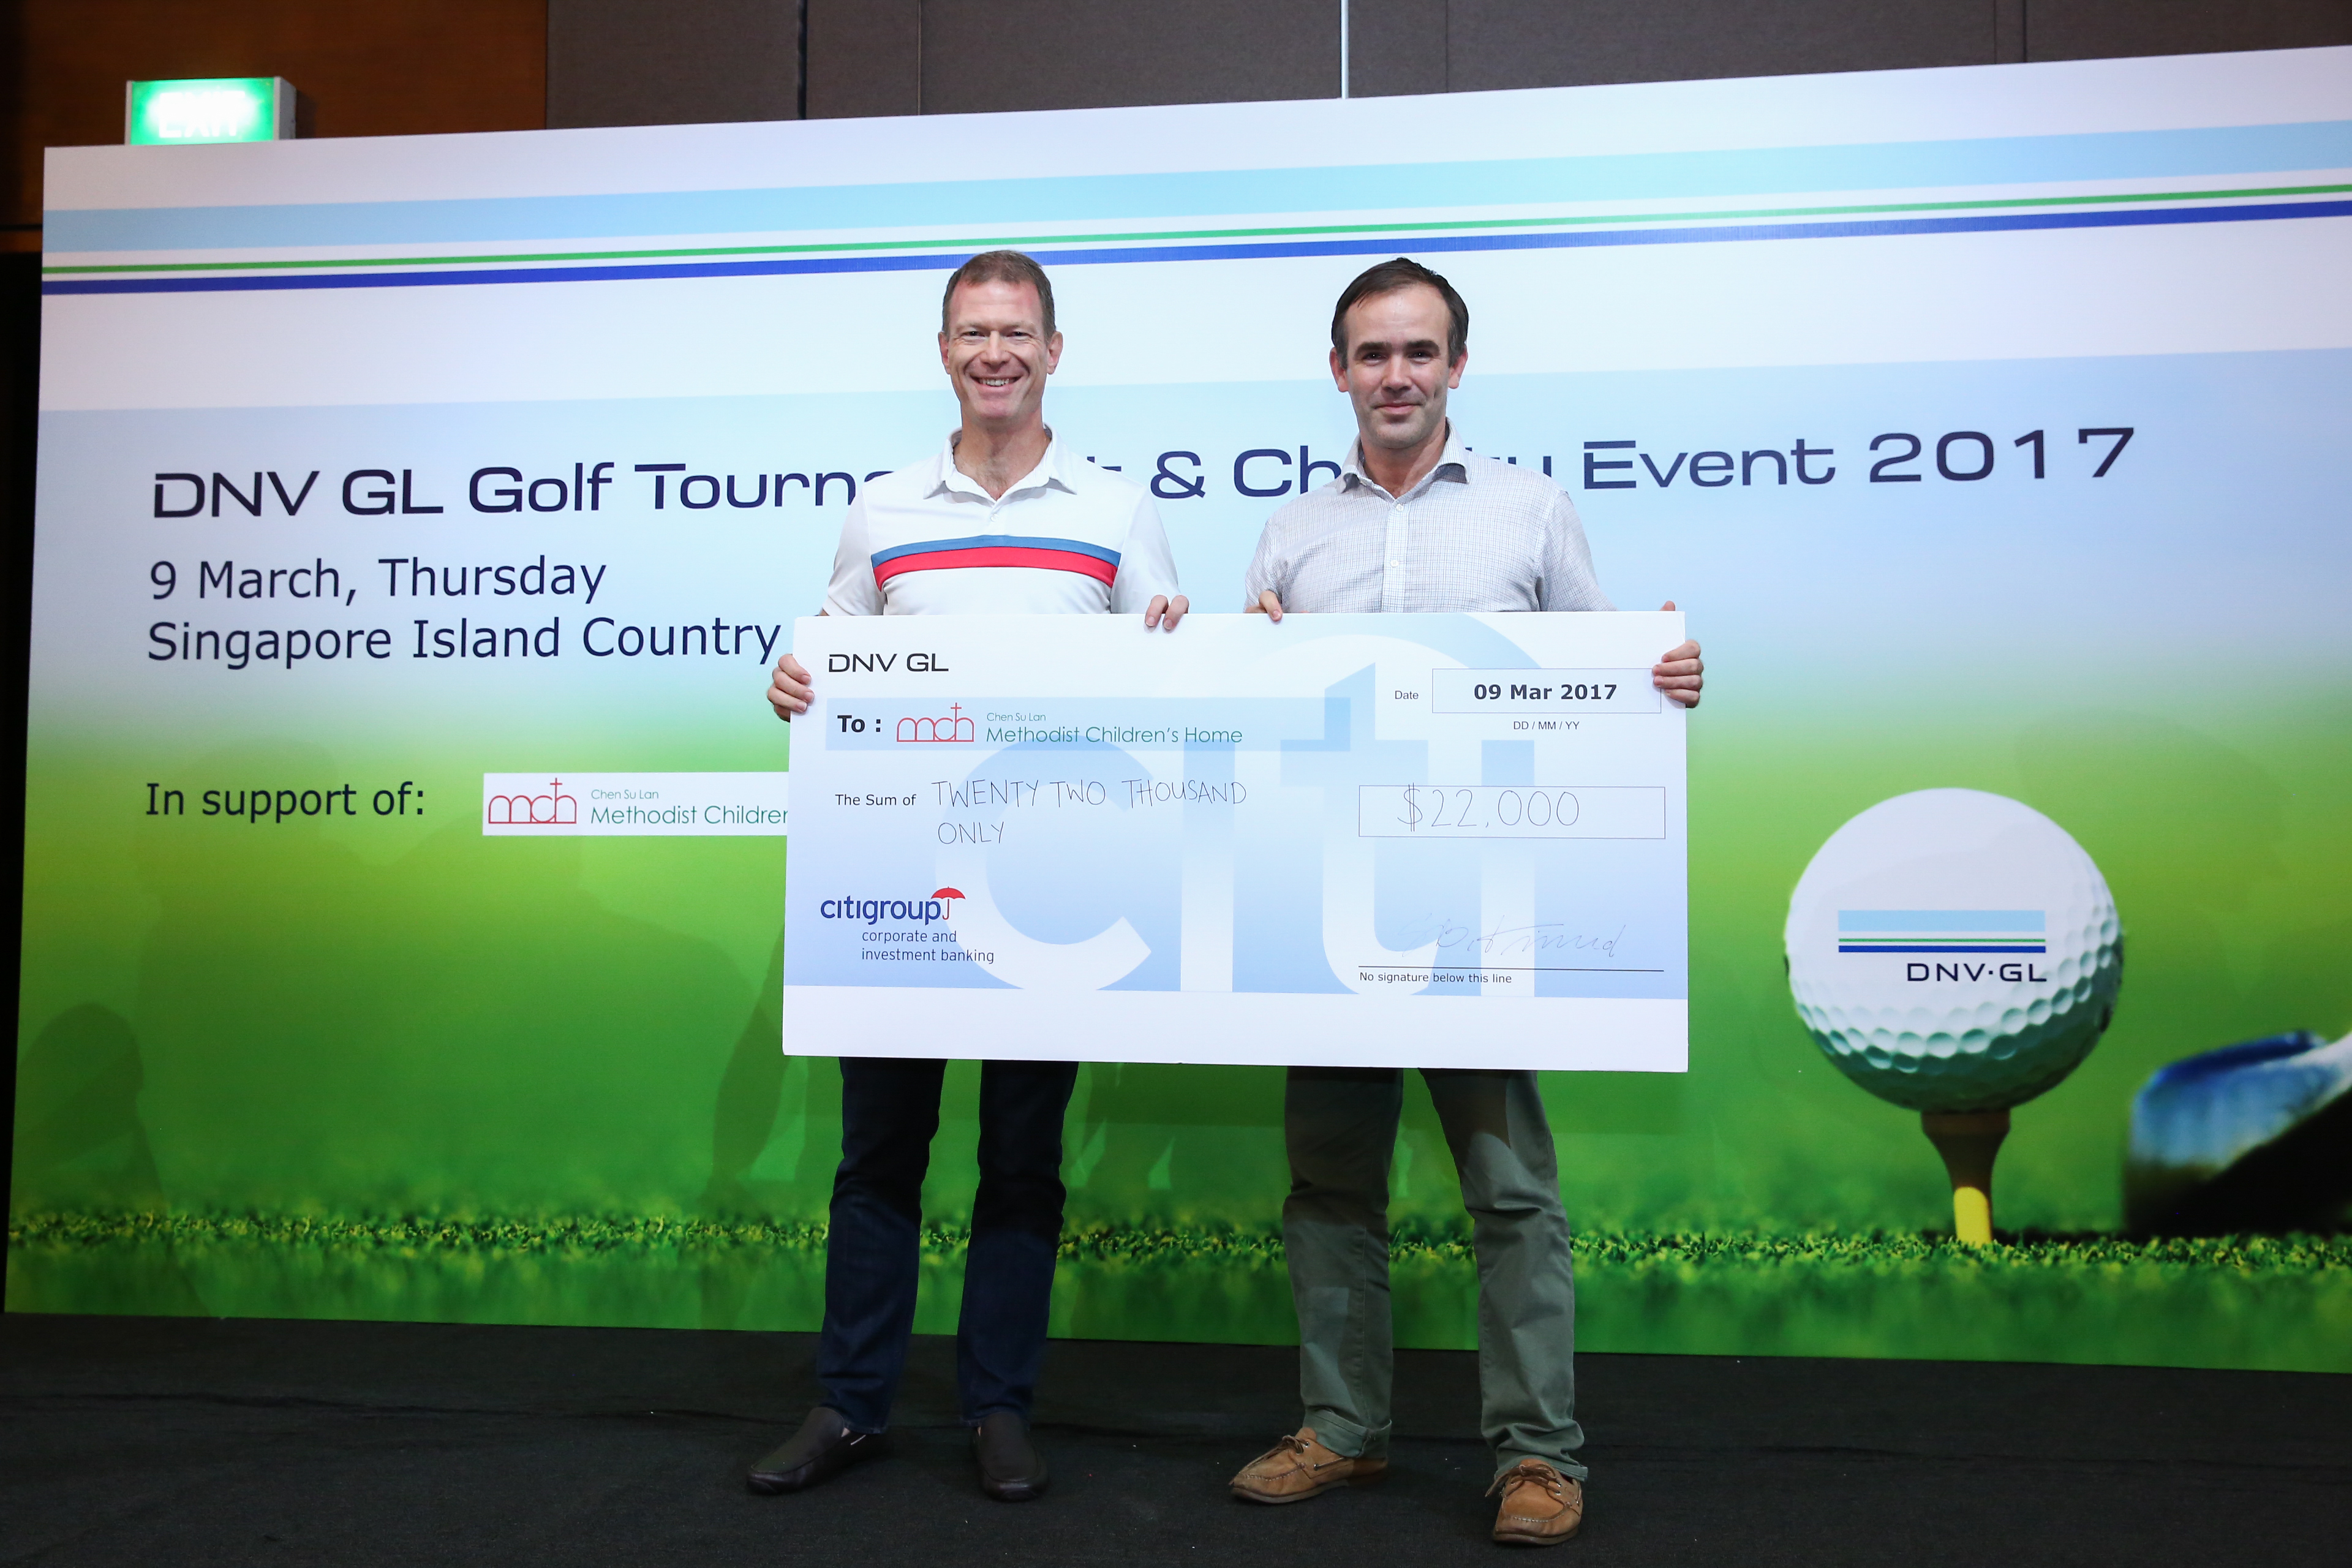 DNV GL's Annual Golf Tournament And Charity Event Article cover photo